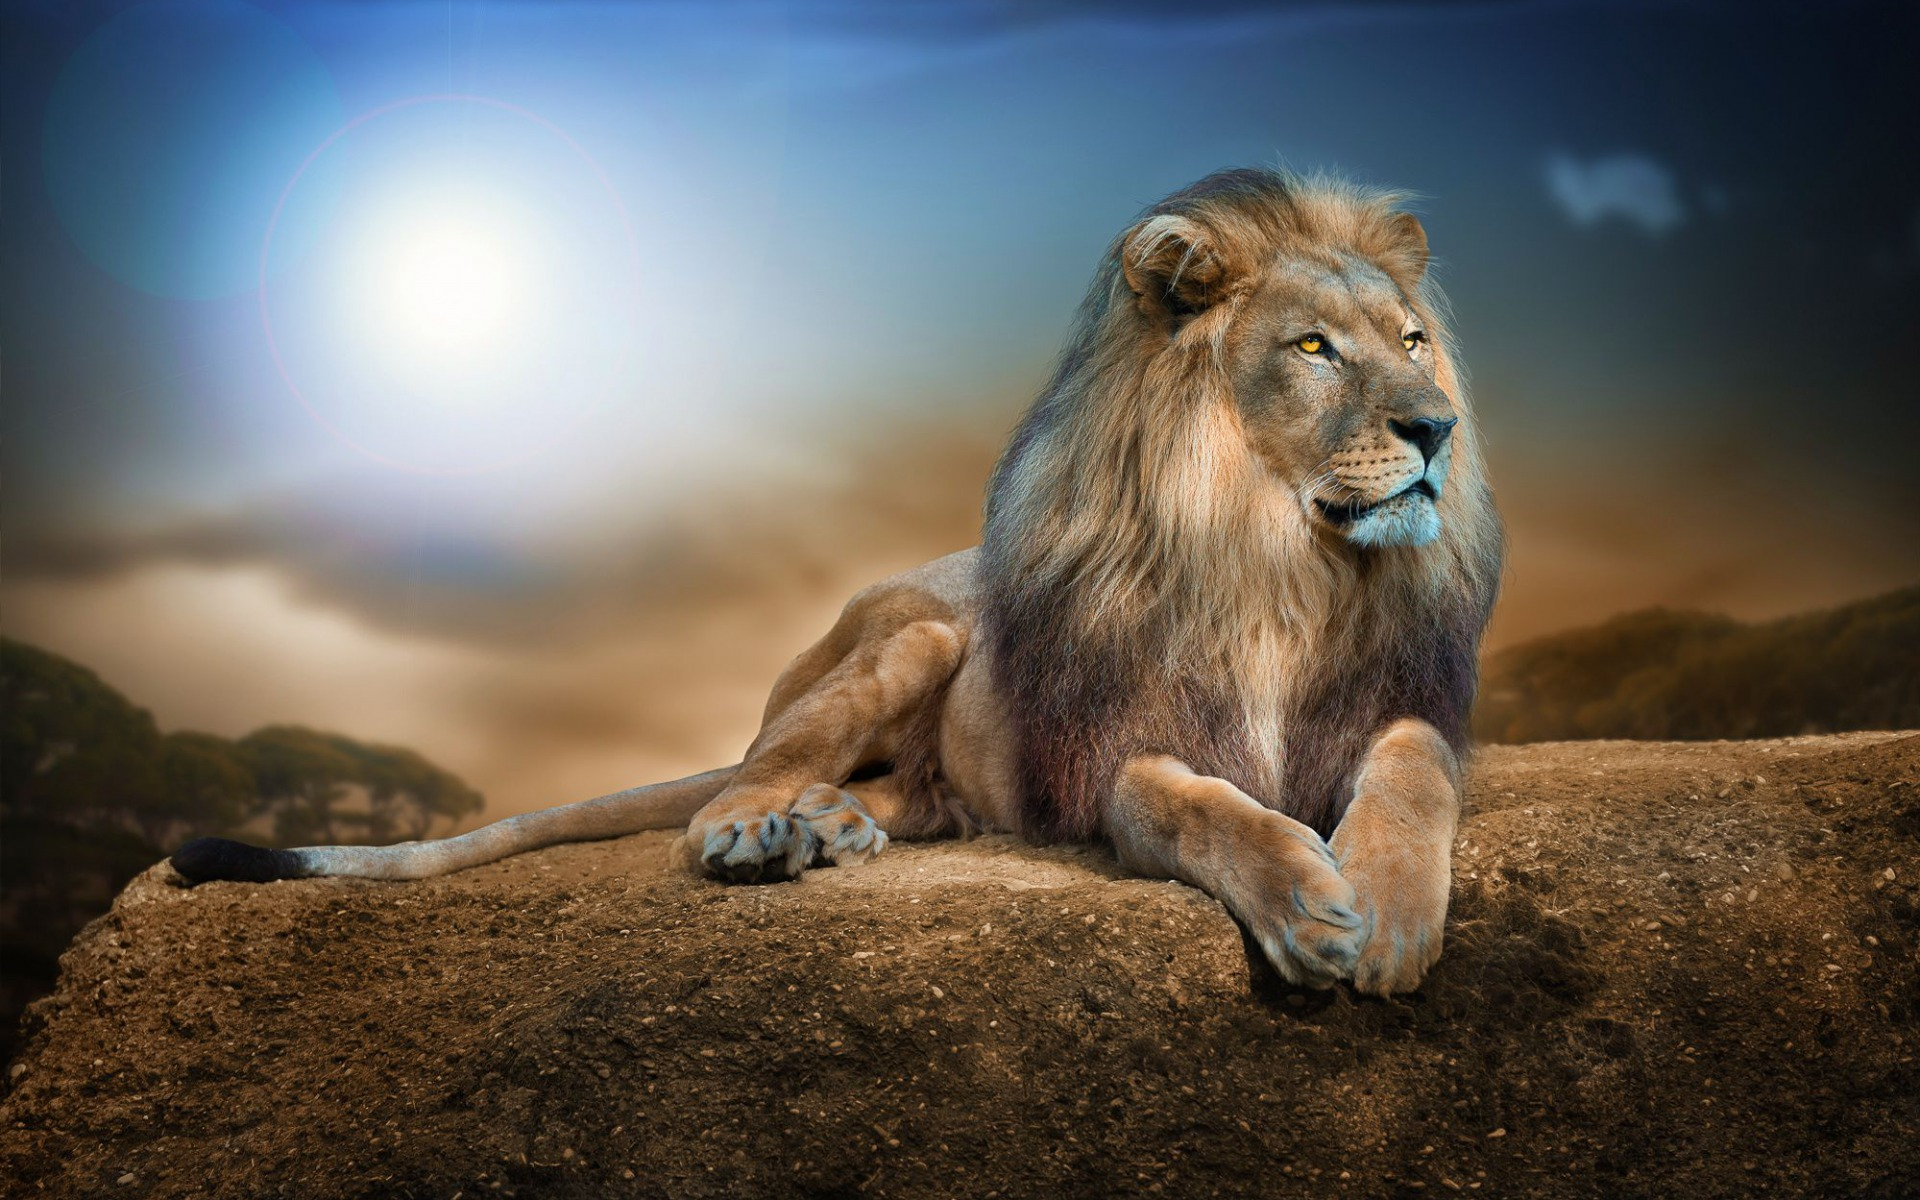 Wallpaper Lion - 1080p Lion Full Hd , HD Wallpaper & Backgrounds